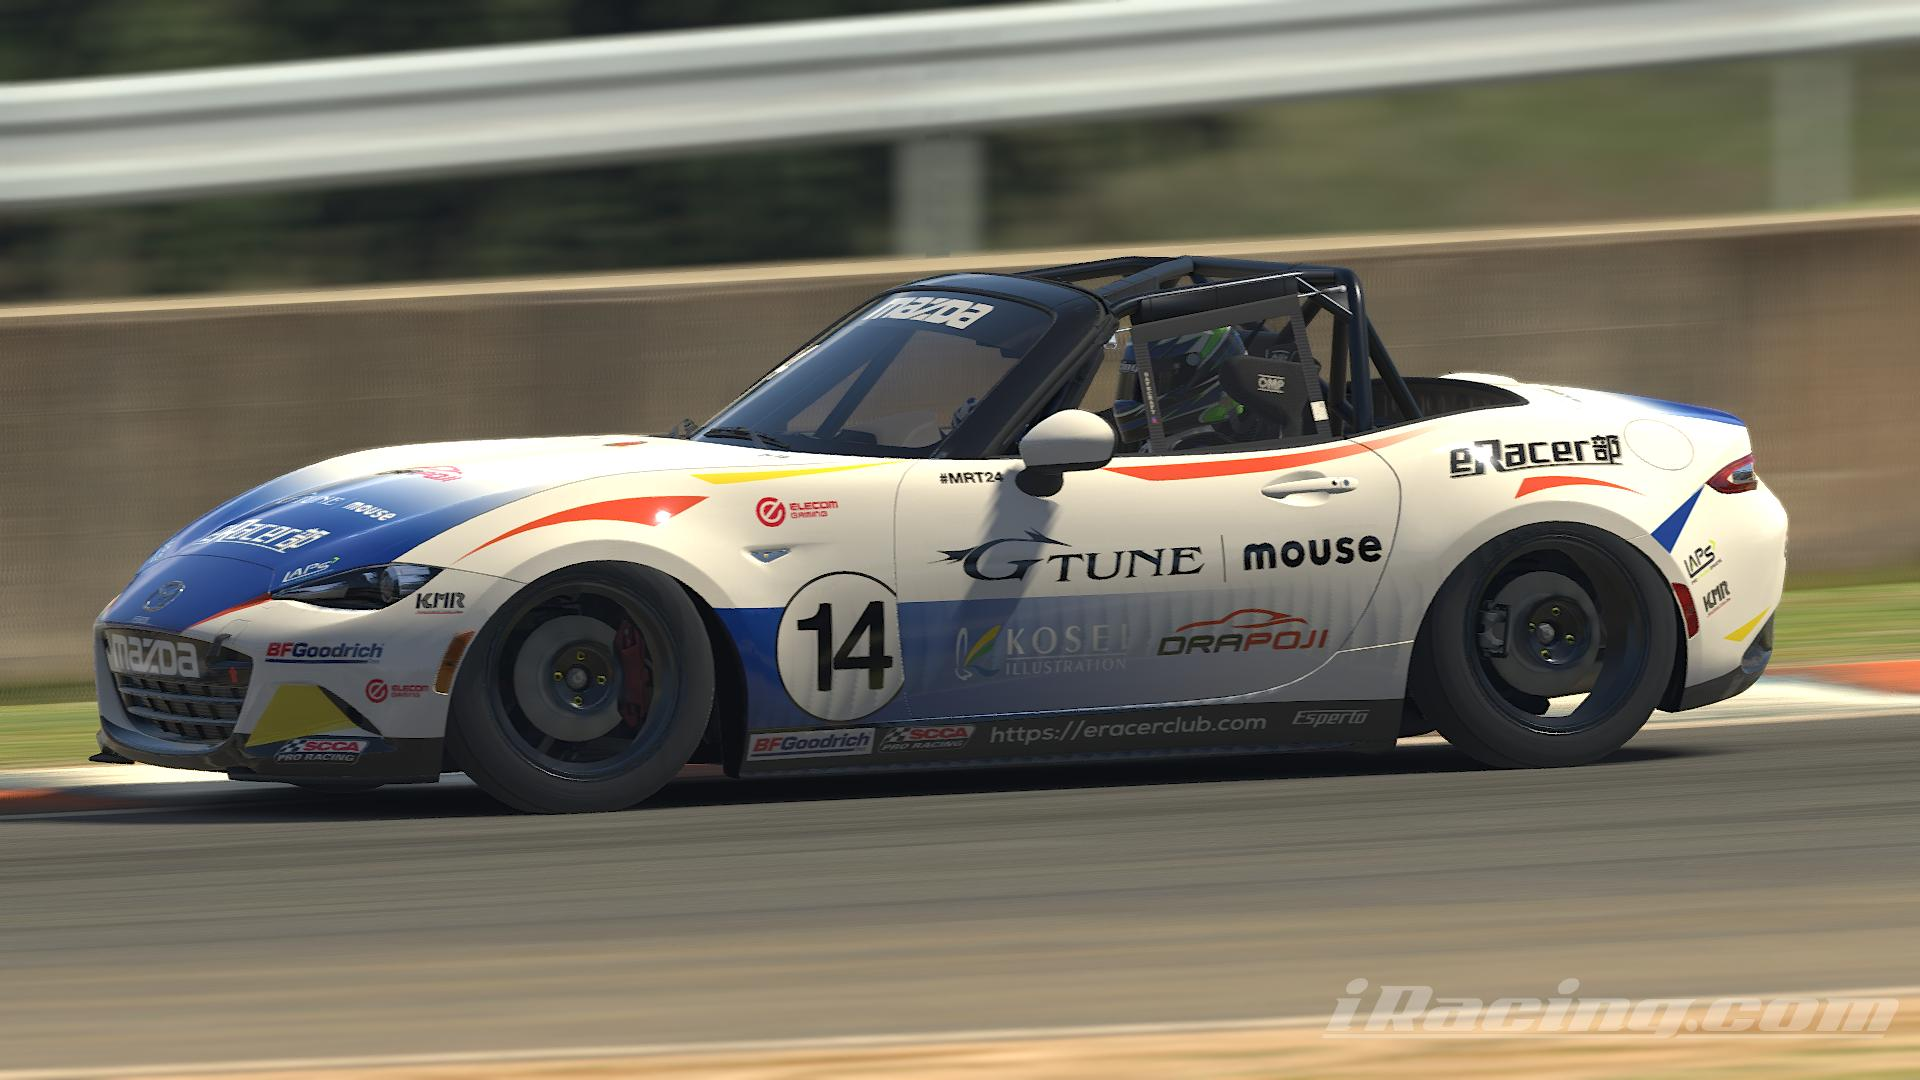 Preview of Esperto-eRacer club Global MX-5 by Yusuke Nodake